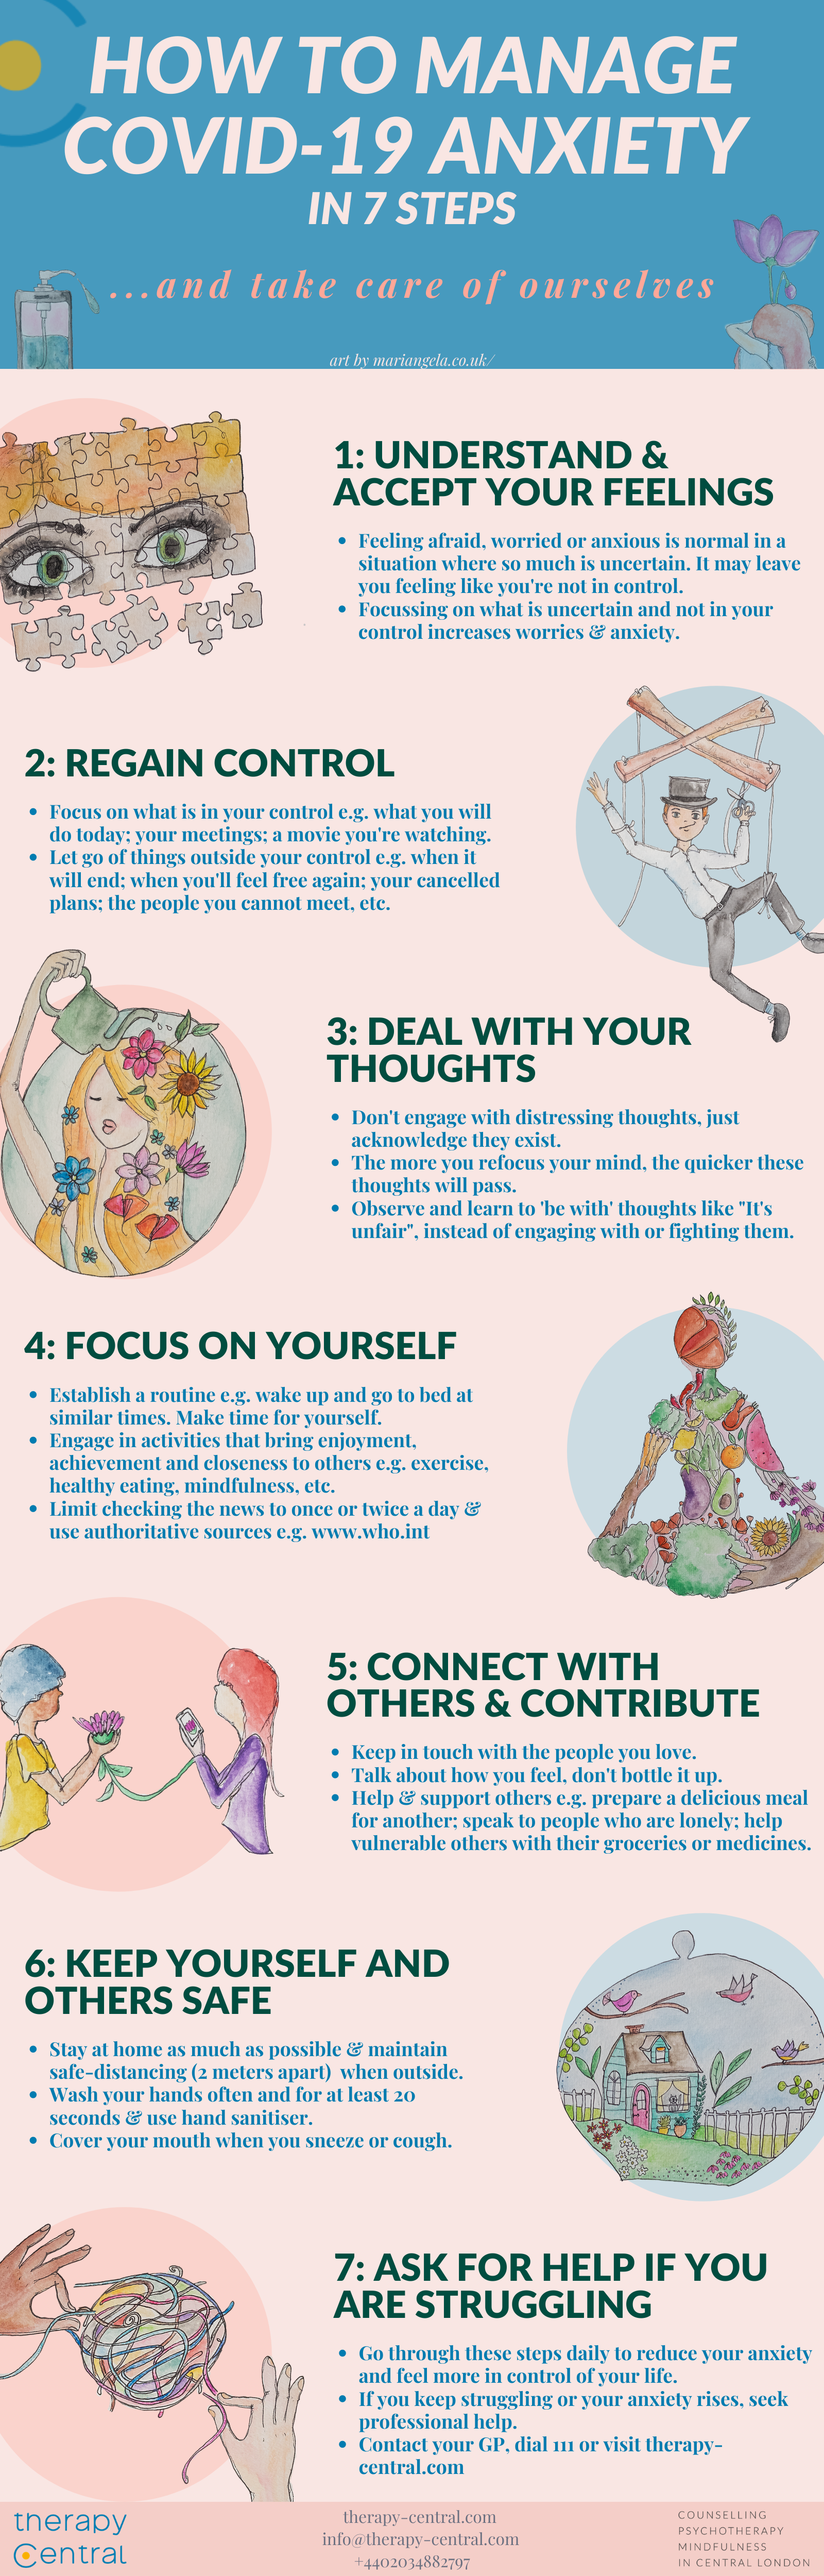 Infographic explaining 7 steps to manage covid-19 anxiety